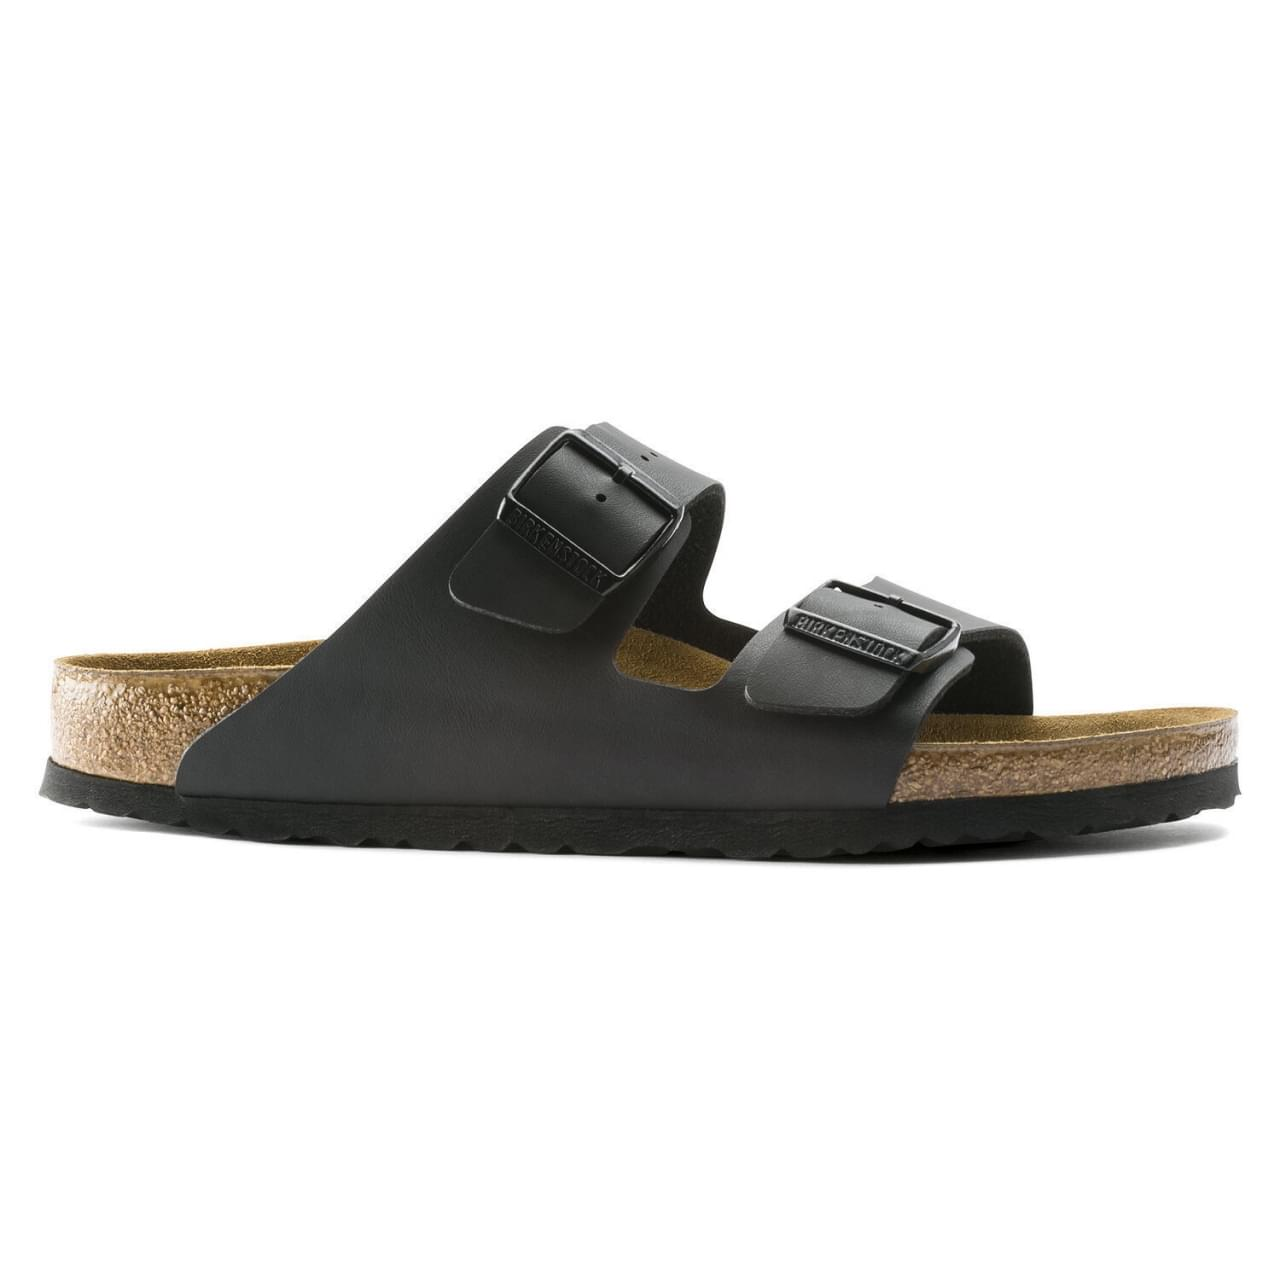 Birkenstock Arizona Birko-Flor Slipper Heren